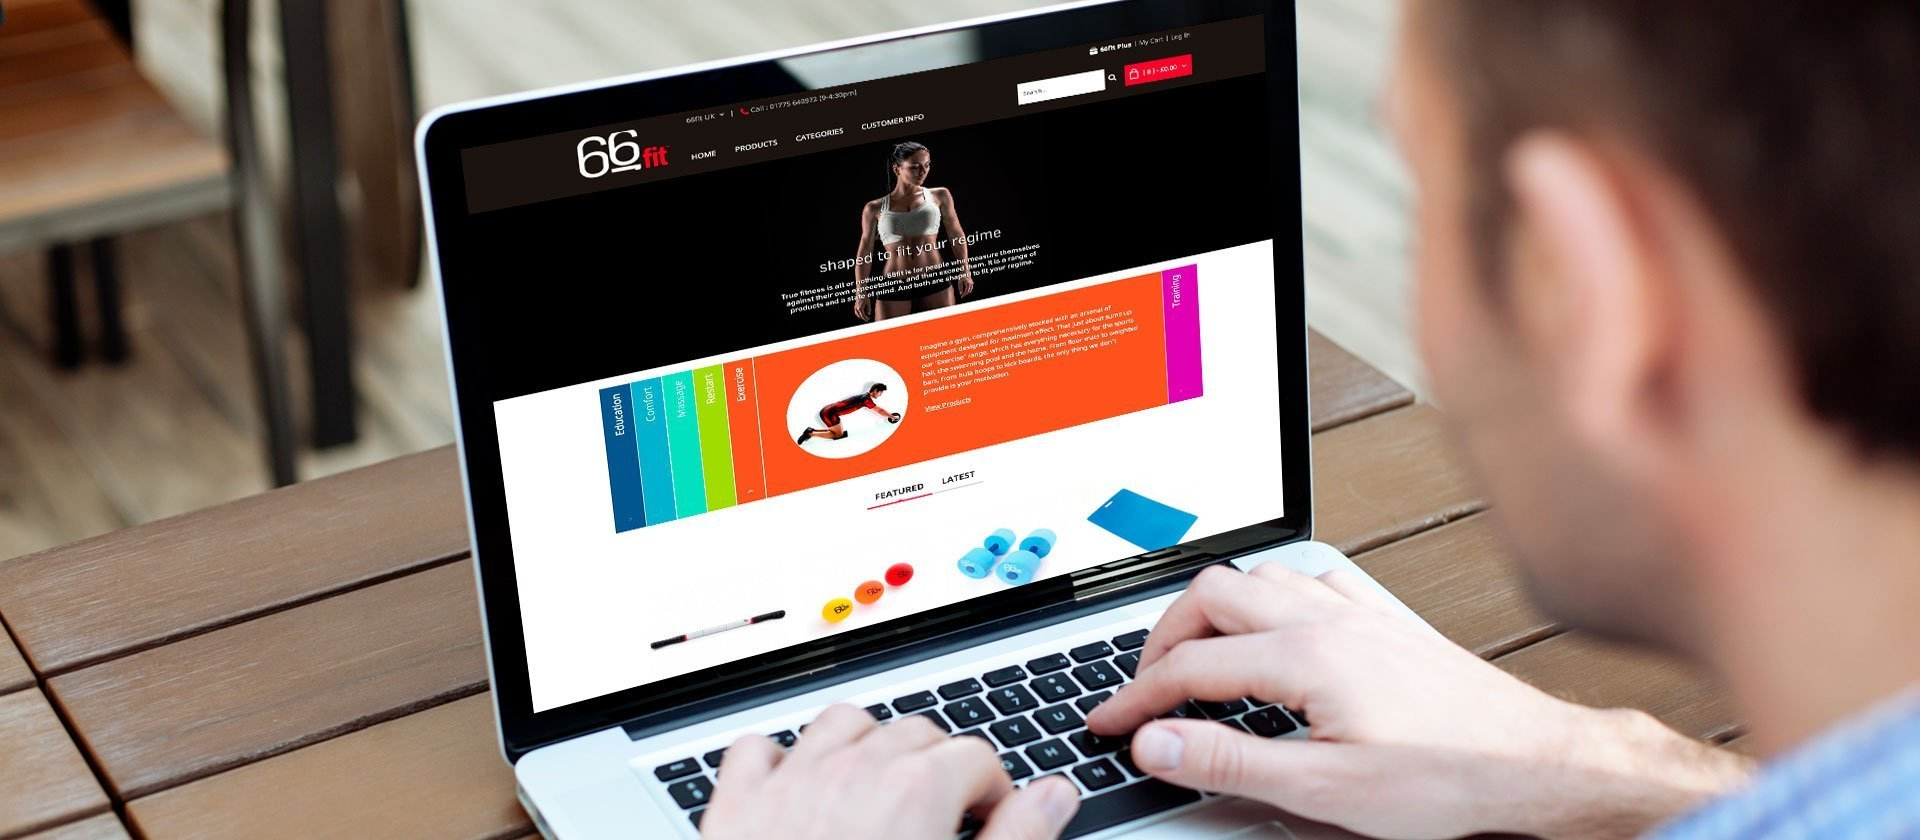 66fit-website